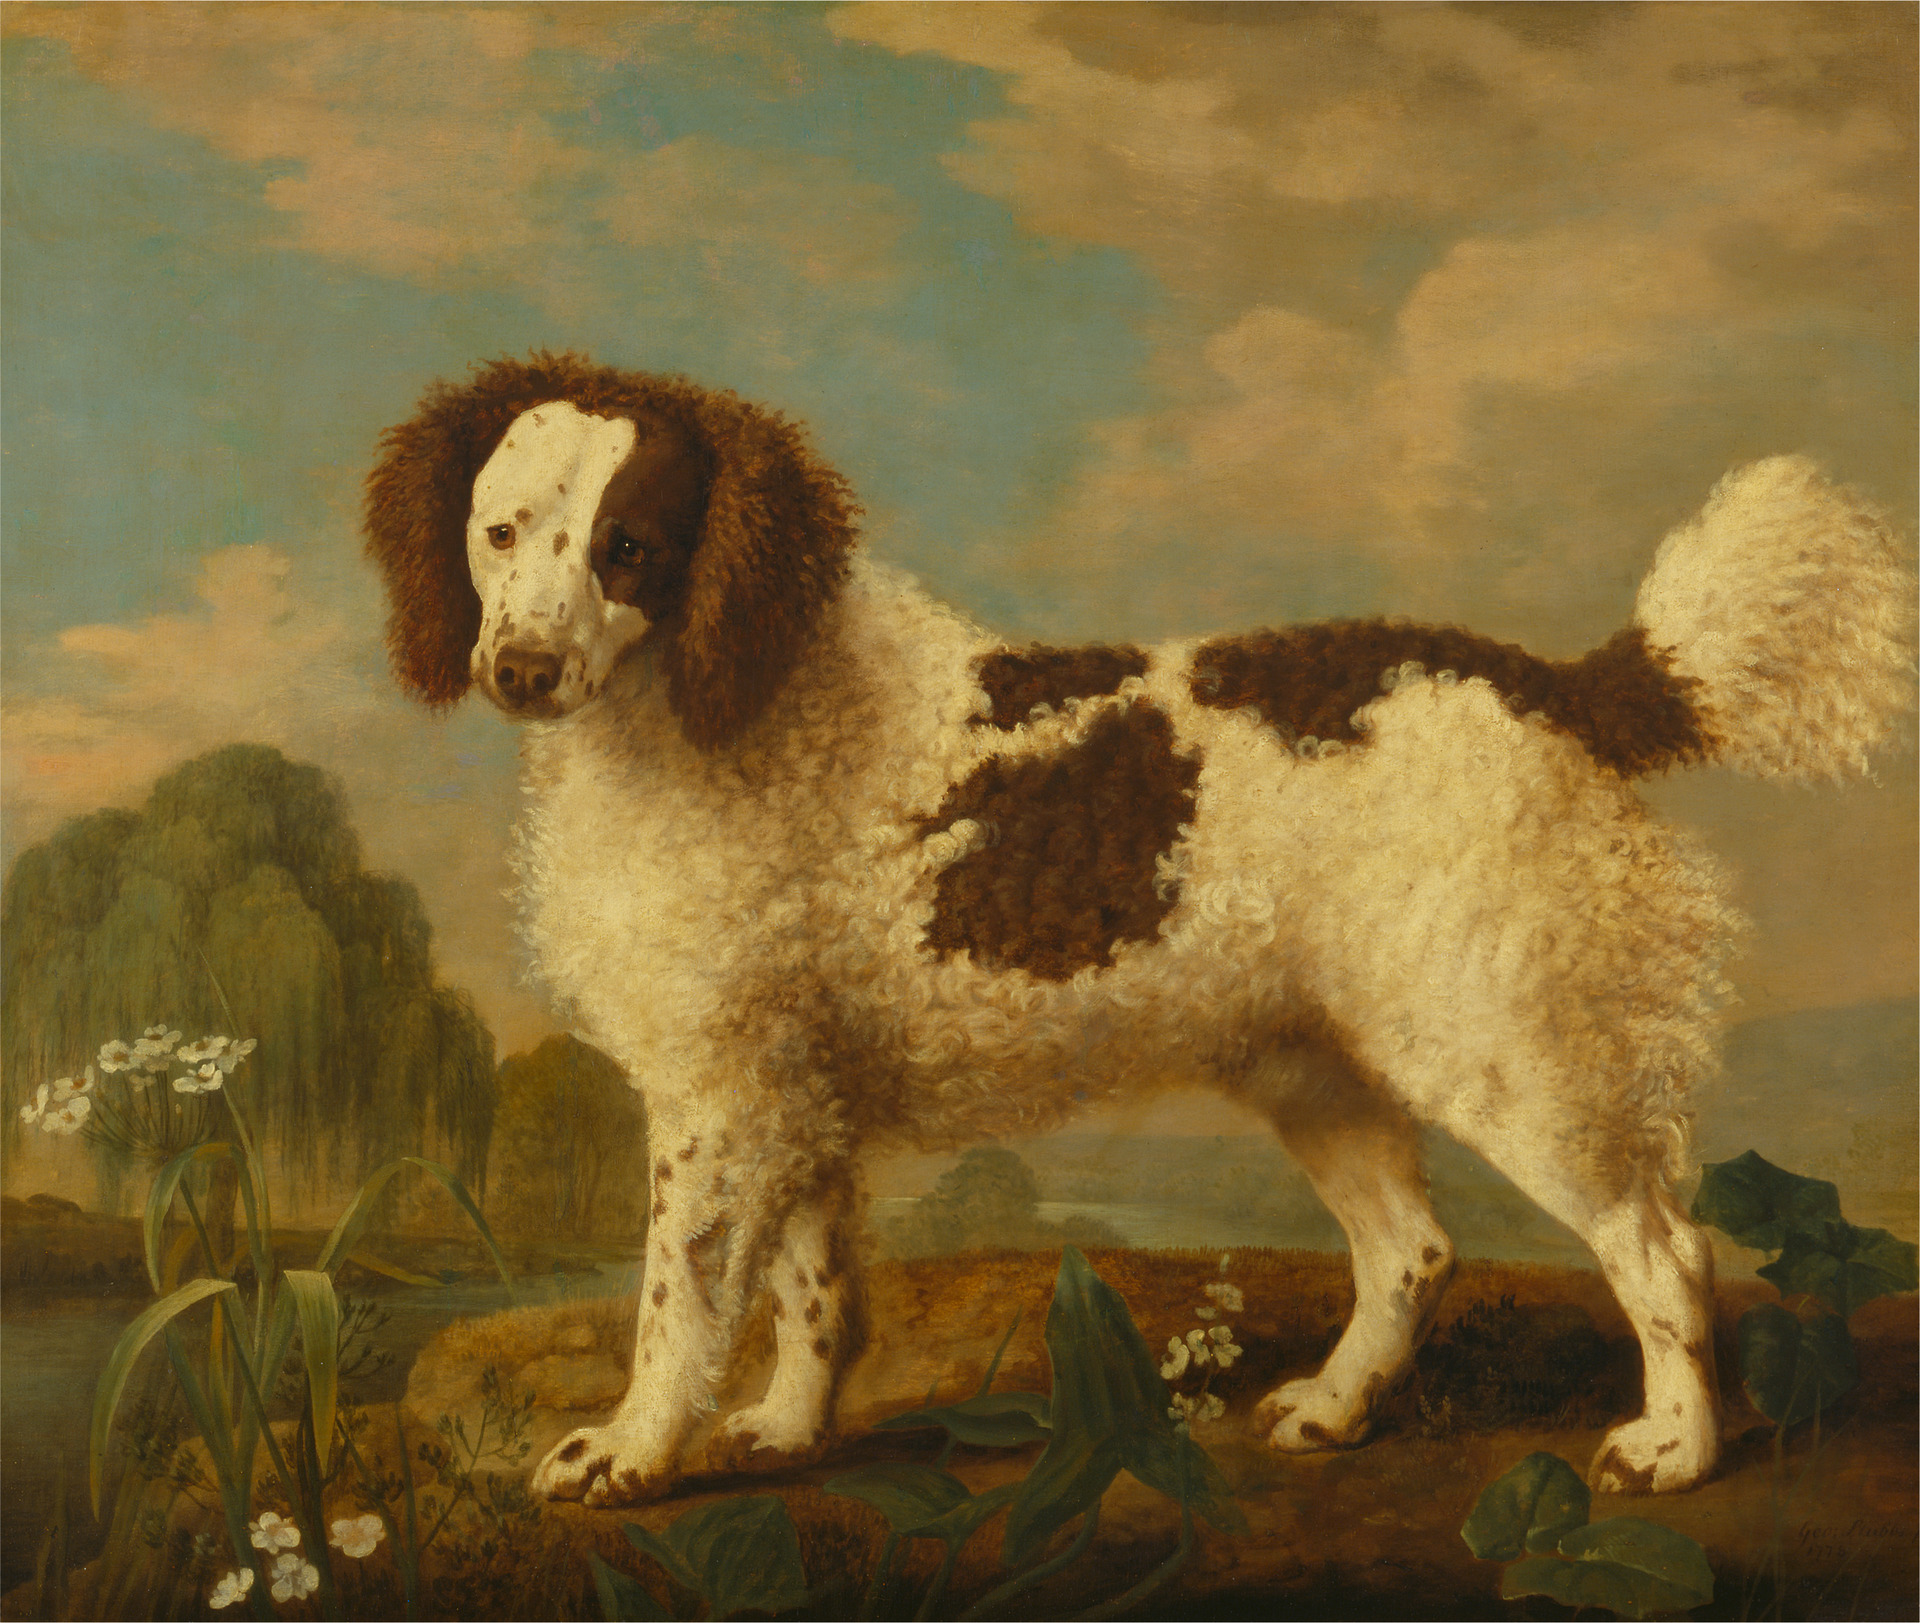 Brown and White Norfolk or Water Spaniel, George Stubbs, 1778